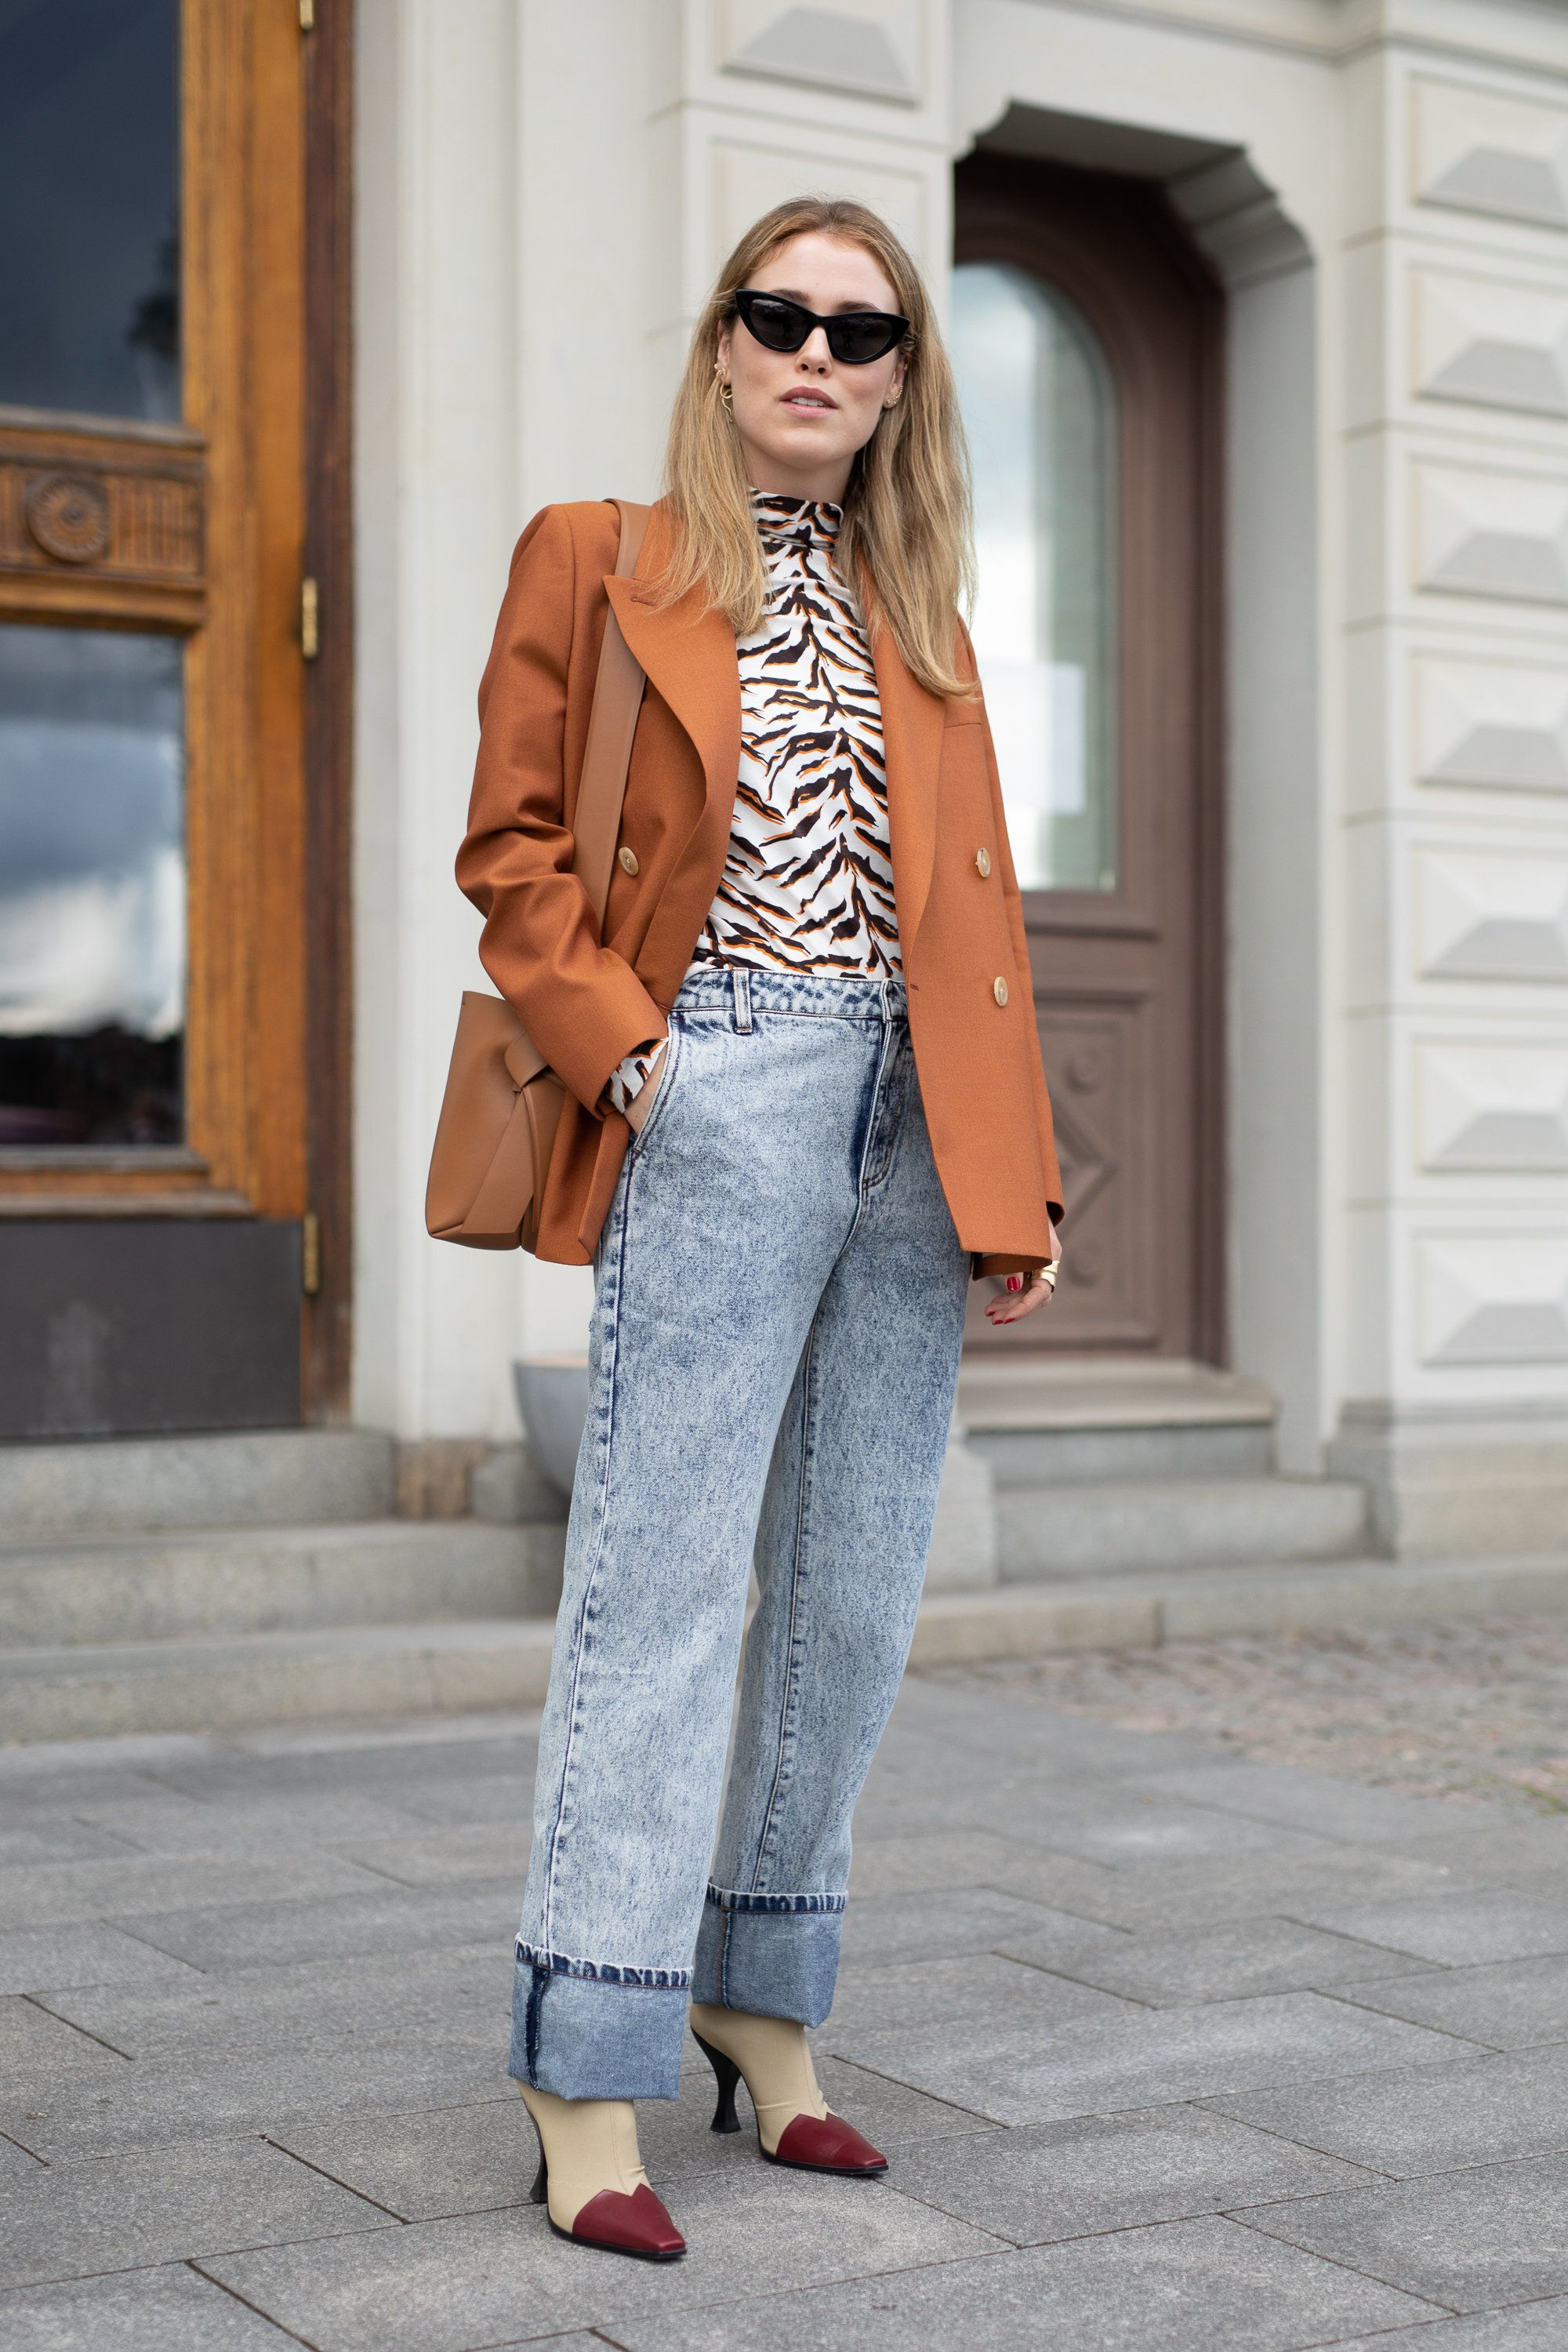 How To Wear Animal Print In Autumn